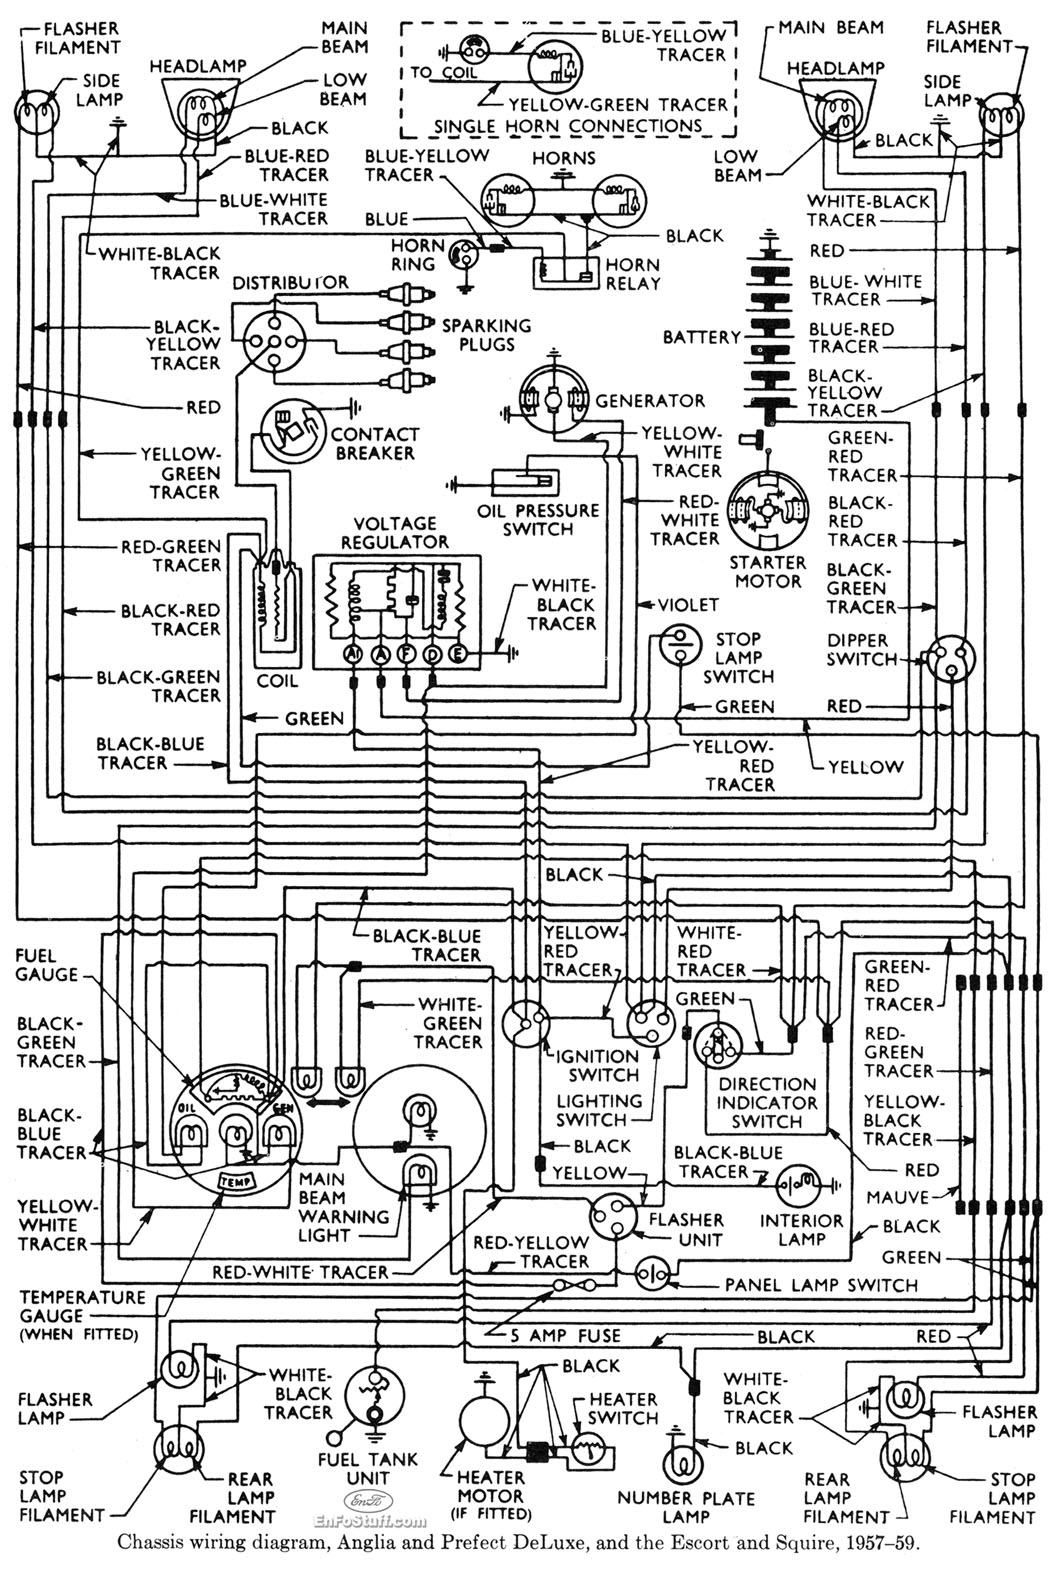 Columbia Car Wiring Diagram Manual Of 2005 2008 Par Schematic Diagrams Rh Ogmconsulting Co 1987 1986